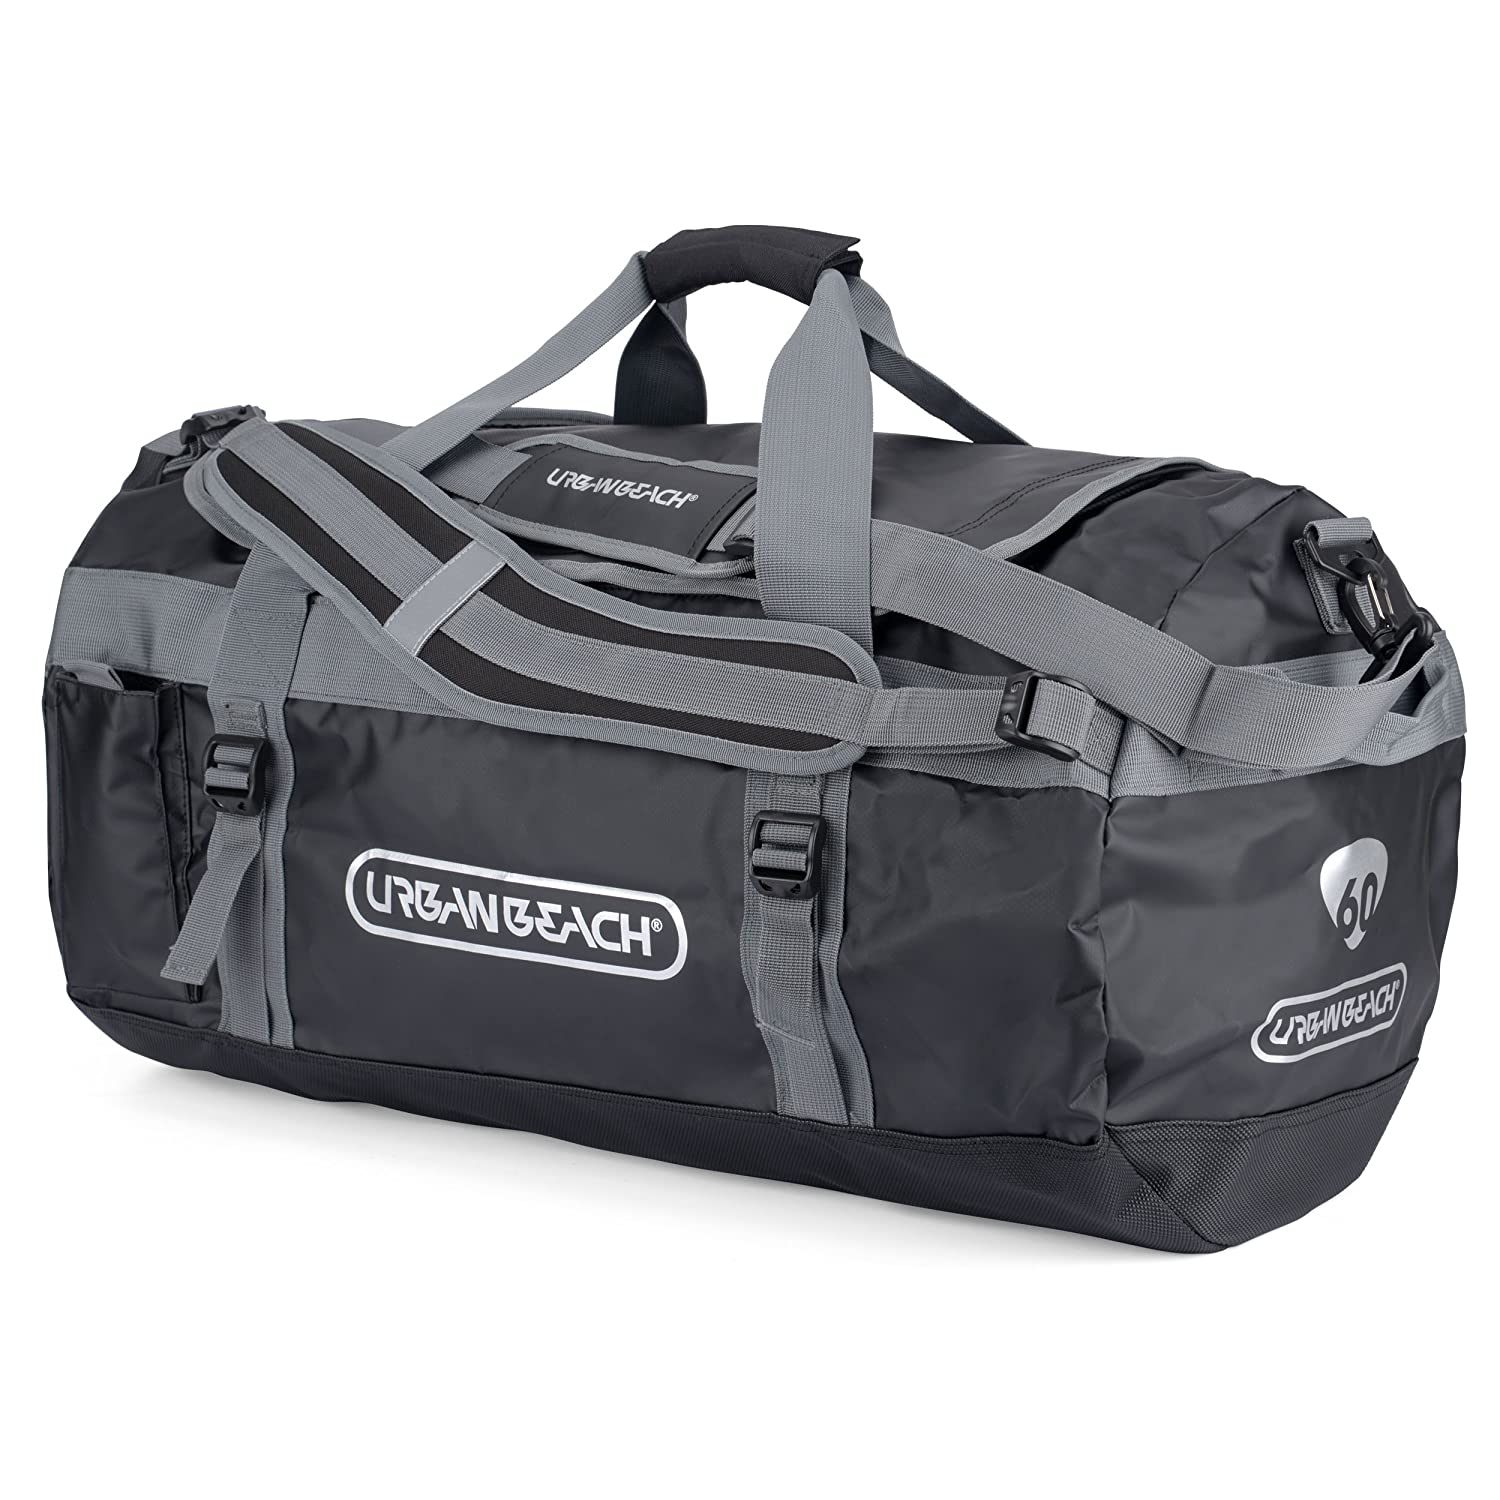 878a32a235 Urban Beach Waterproof Duffel Bag - XL Dry Bag with Adjustable Shoulder  Straps  Amazon.co.uk  Sports   Outdoors